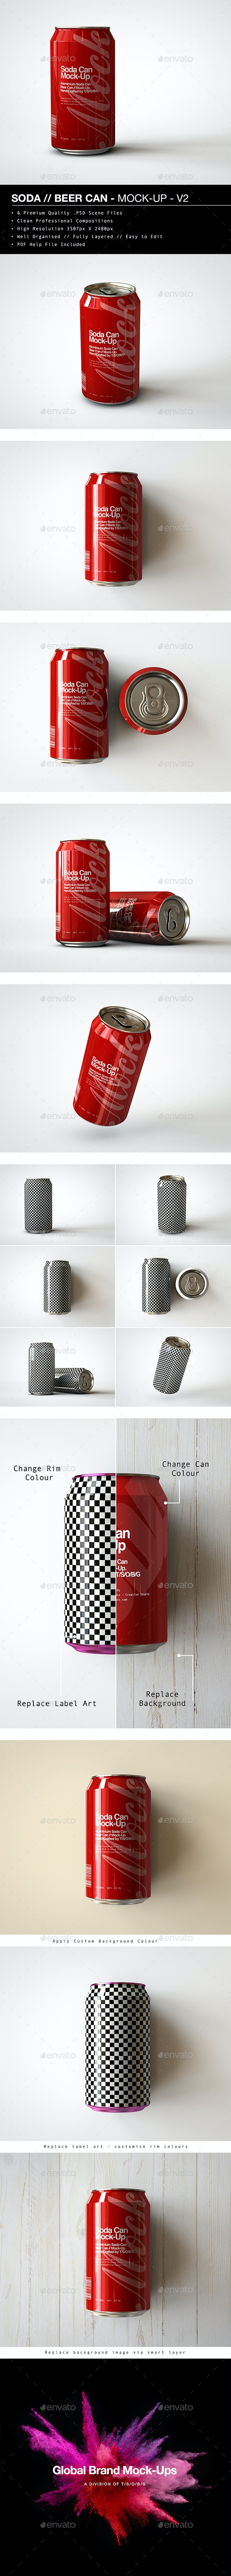 Soda Can | Beer Can Mock-Up - V2 - Food and Drink Packaging